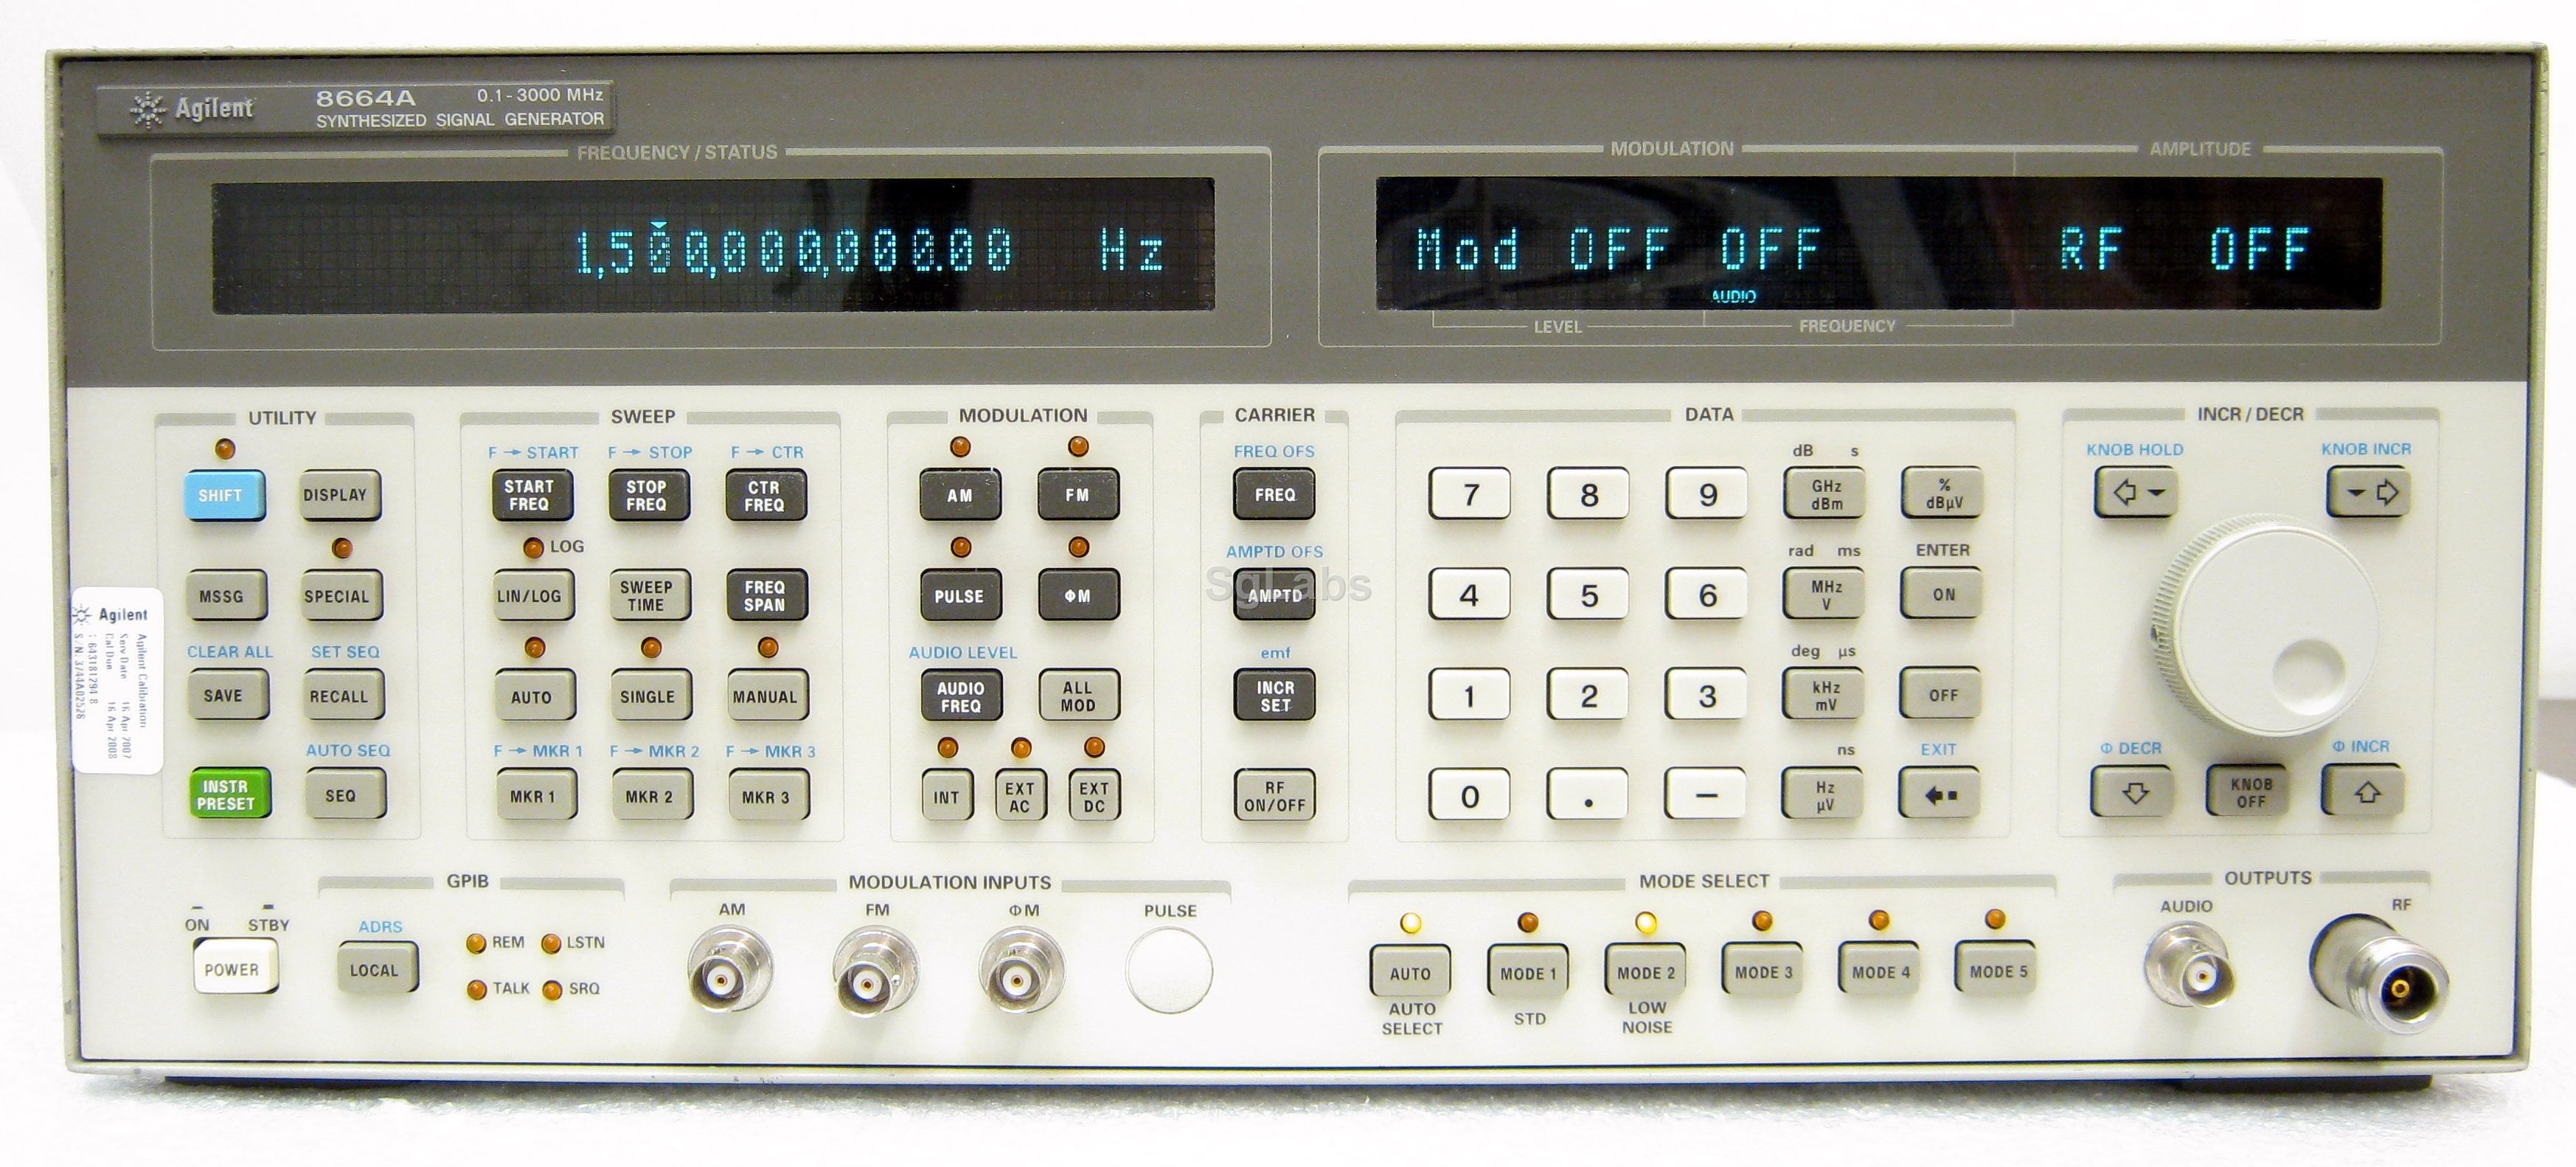 Hp Agilent Keysight 8664a High Frequency Waveform Generator On Request Well Send You Resolution Pictures And Options Of The Real Item Product Description Sinthesized Rf Signal